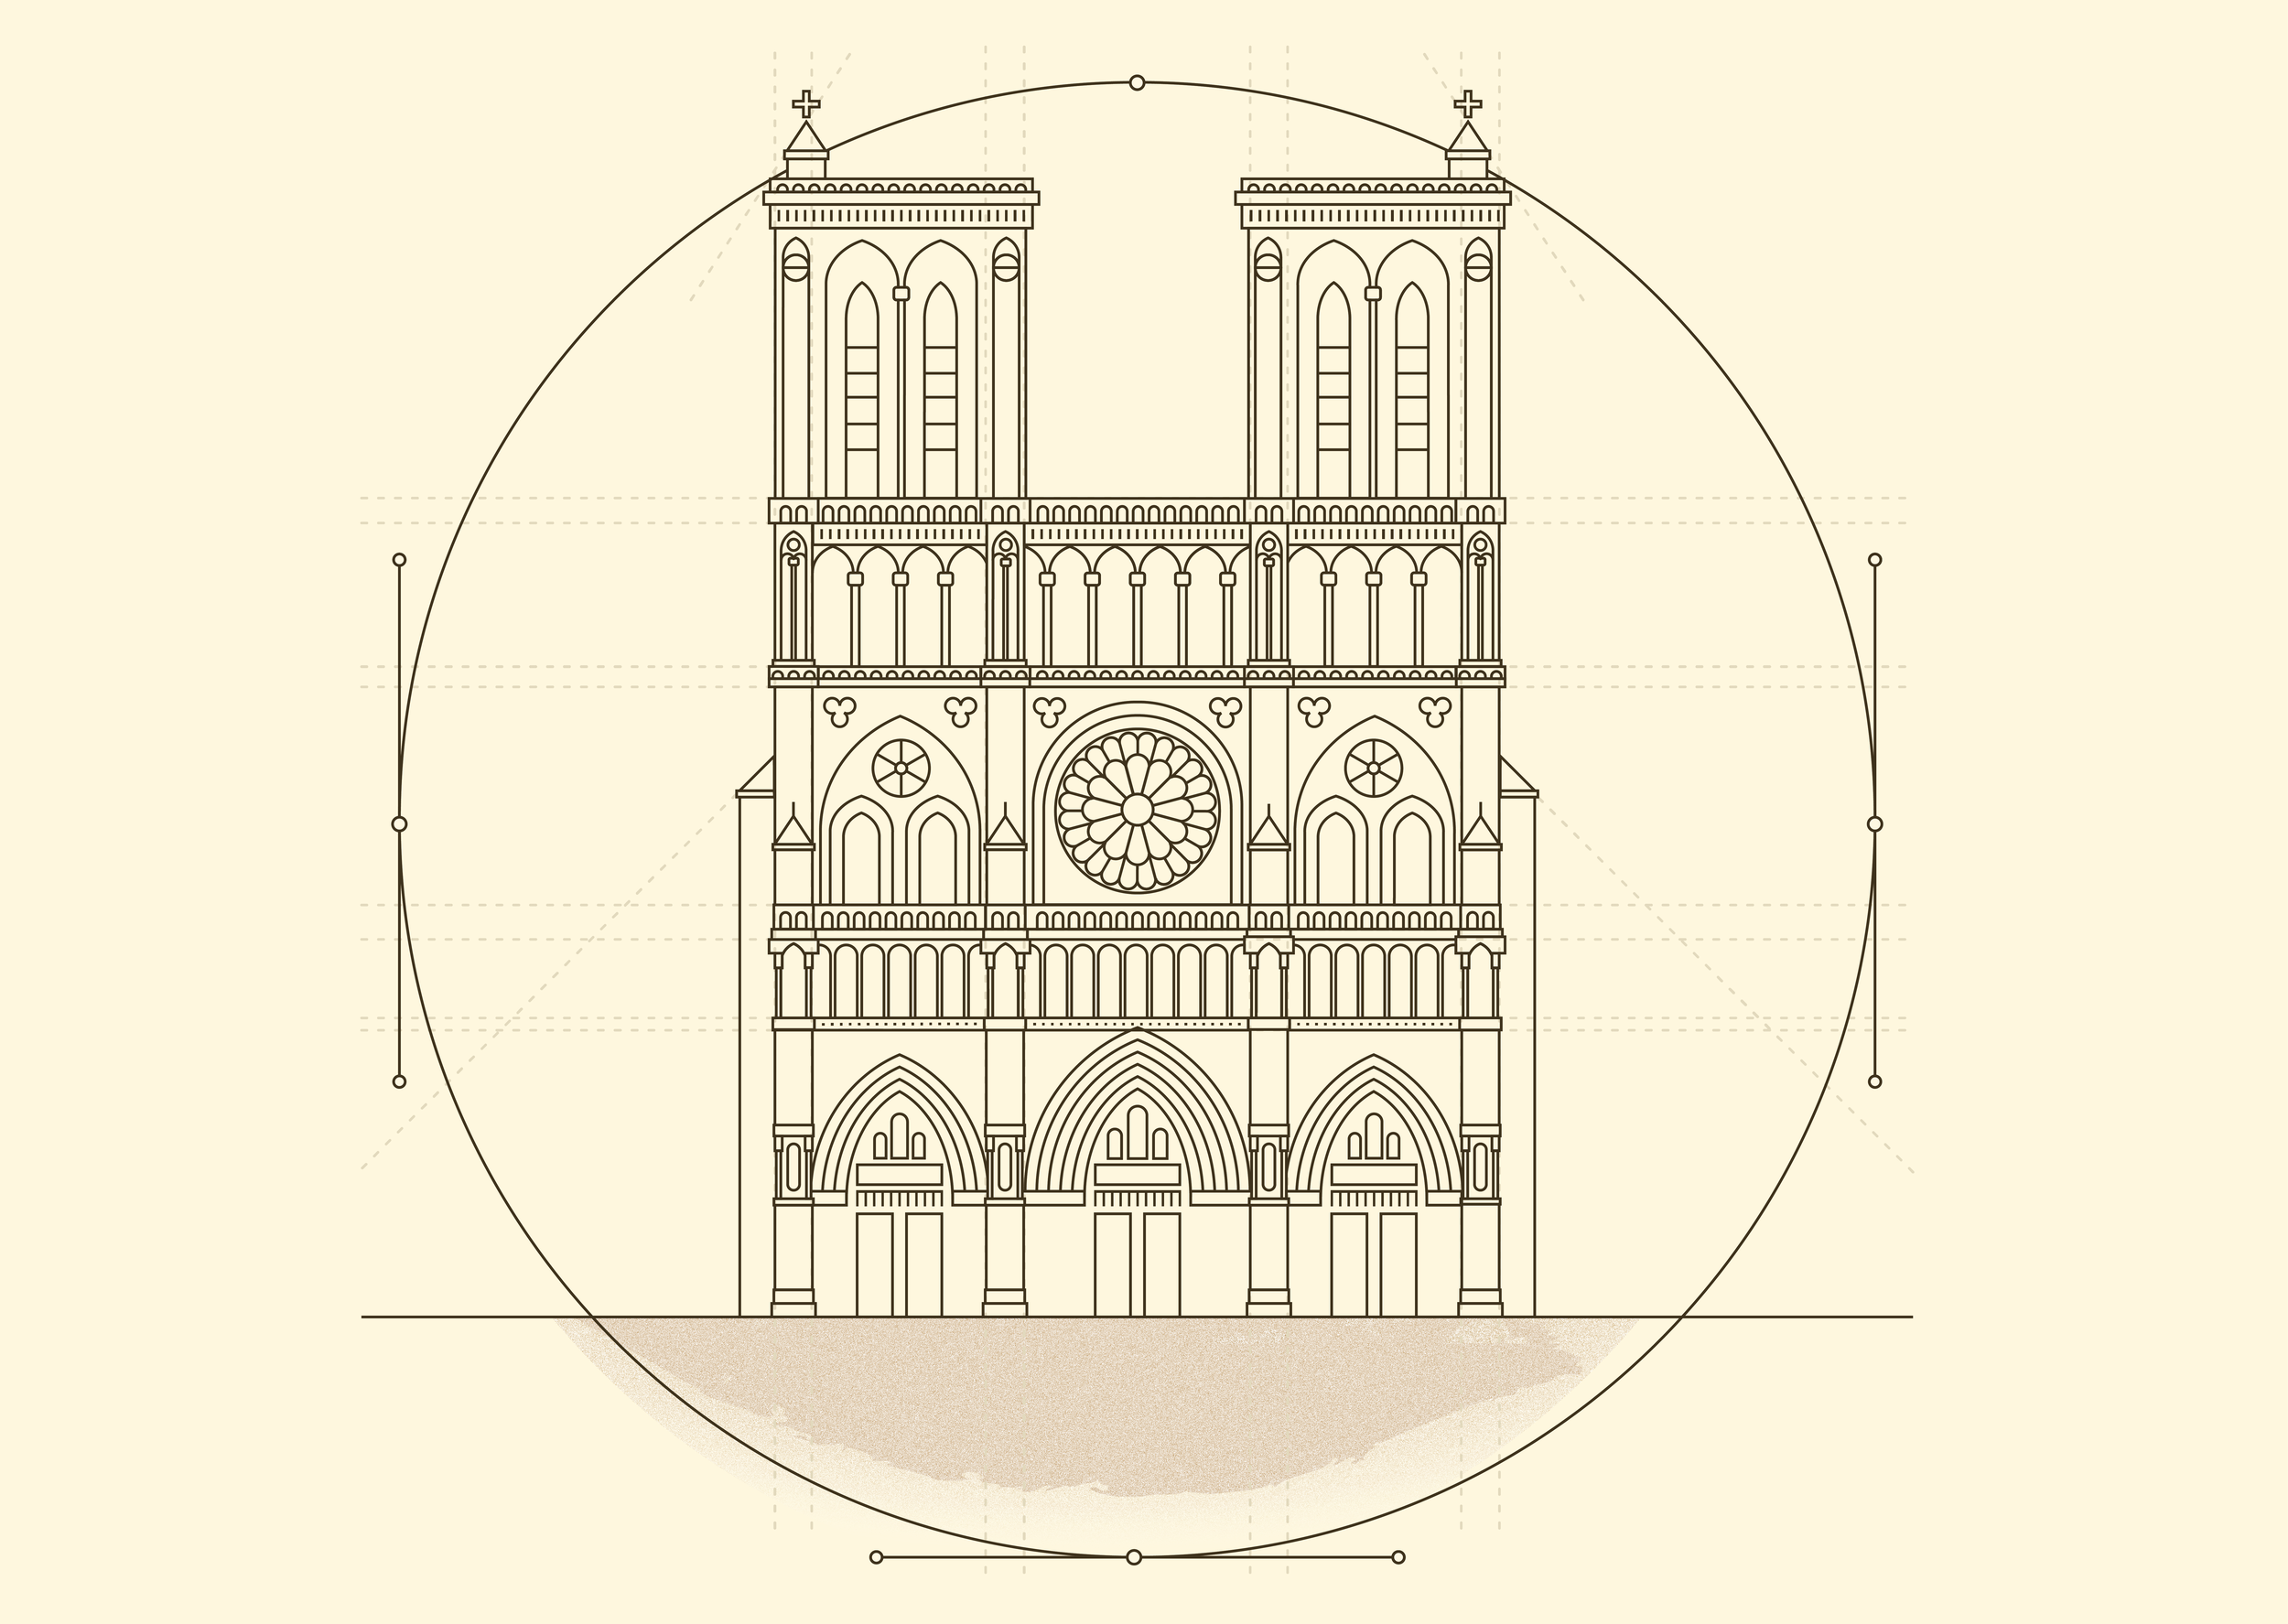 notre dame-01.png